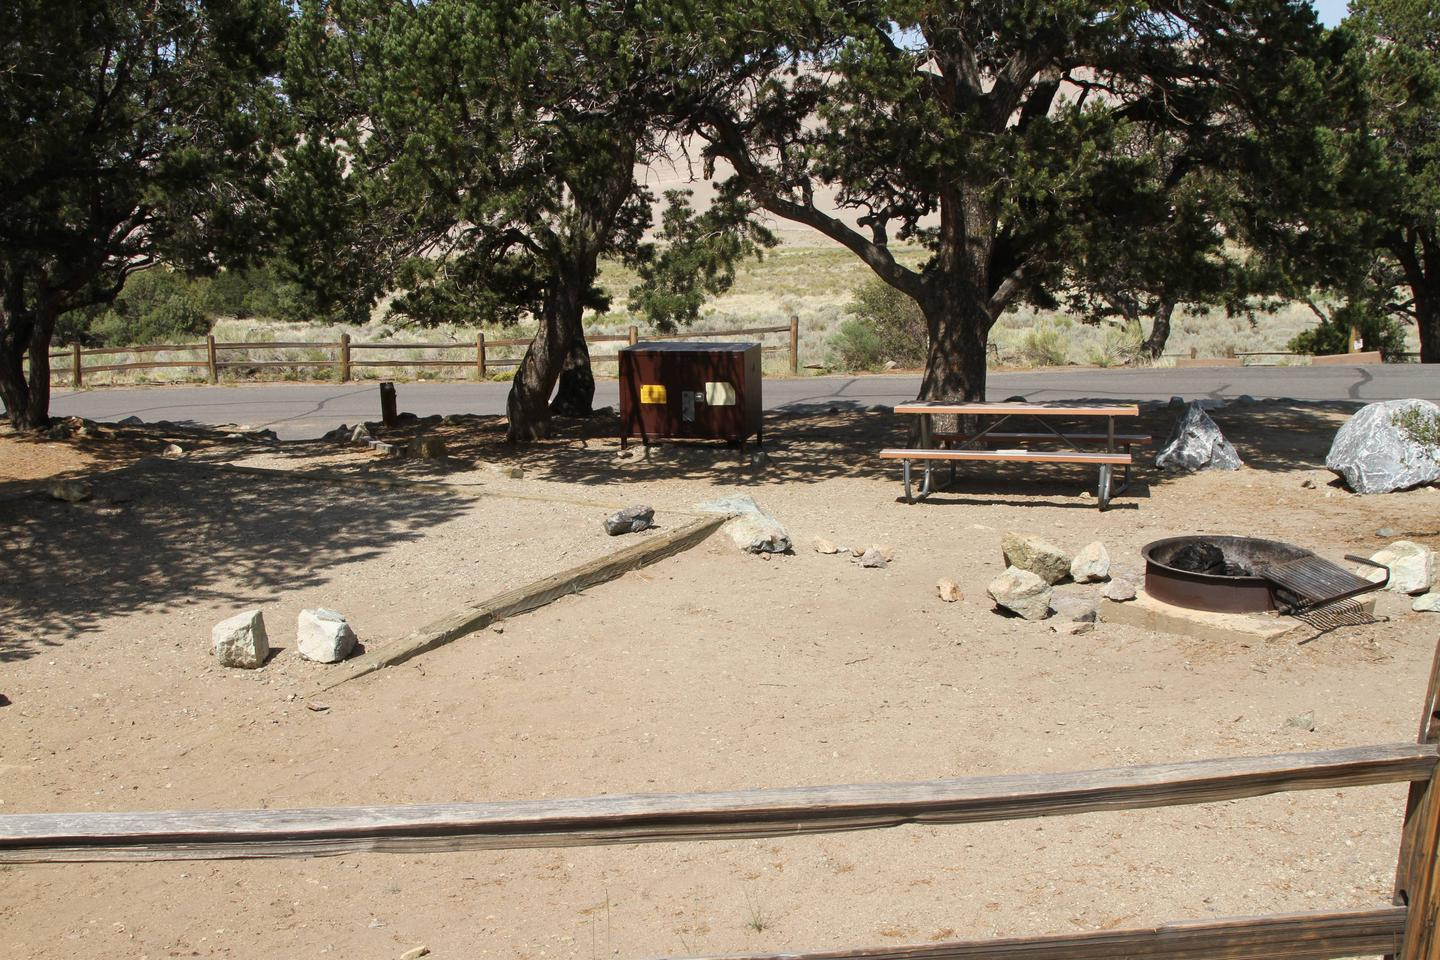 Back view of Site #23 designated tent pad, fire ring, picnic table and bear box. Pine trees provide mild shade in the background.Site #23, Pinon Flats Campground